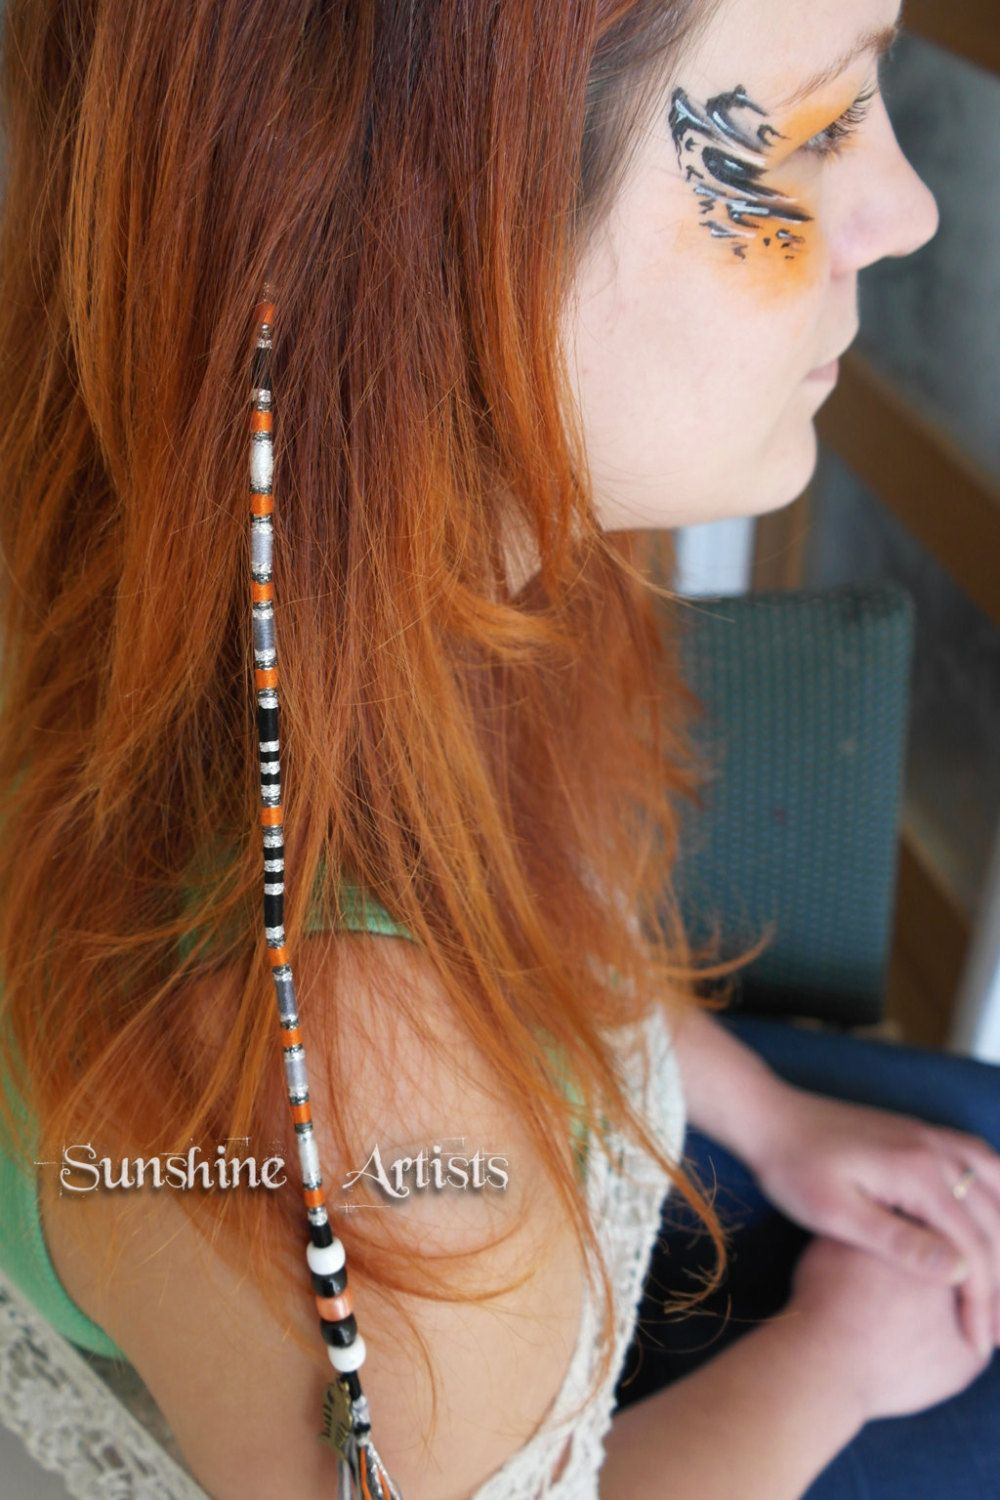 Goldfish pattern hair wrap, hair braid, hair art - orange, black and grey - bronze charm and beads (with instructions) by SunshineArtists on Etsy